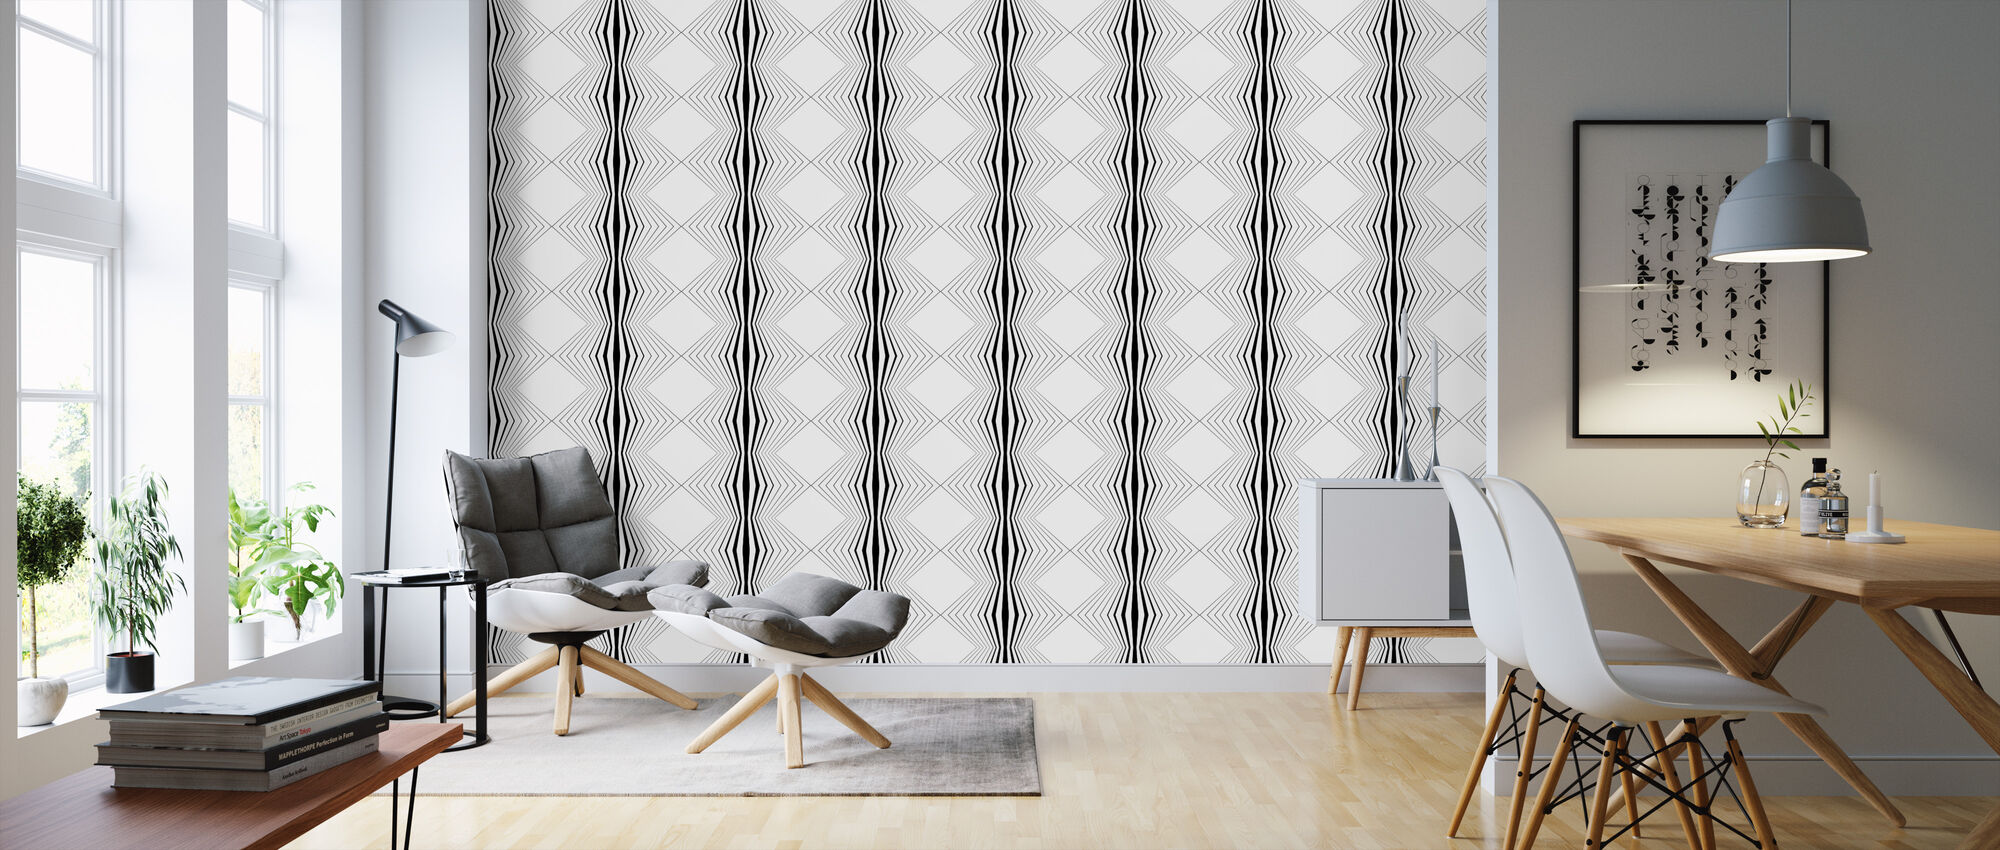 zhape black and white eine tapete f r jeden raum und jedes ambiente photowall. Black Bedroom Furniture Sets. Home Design Ideas